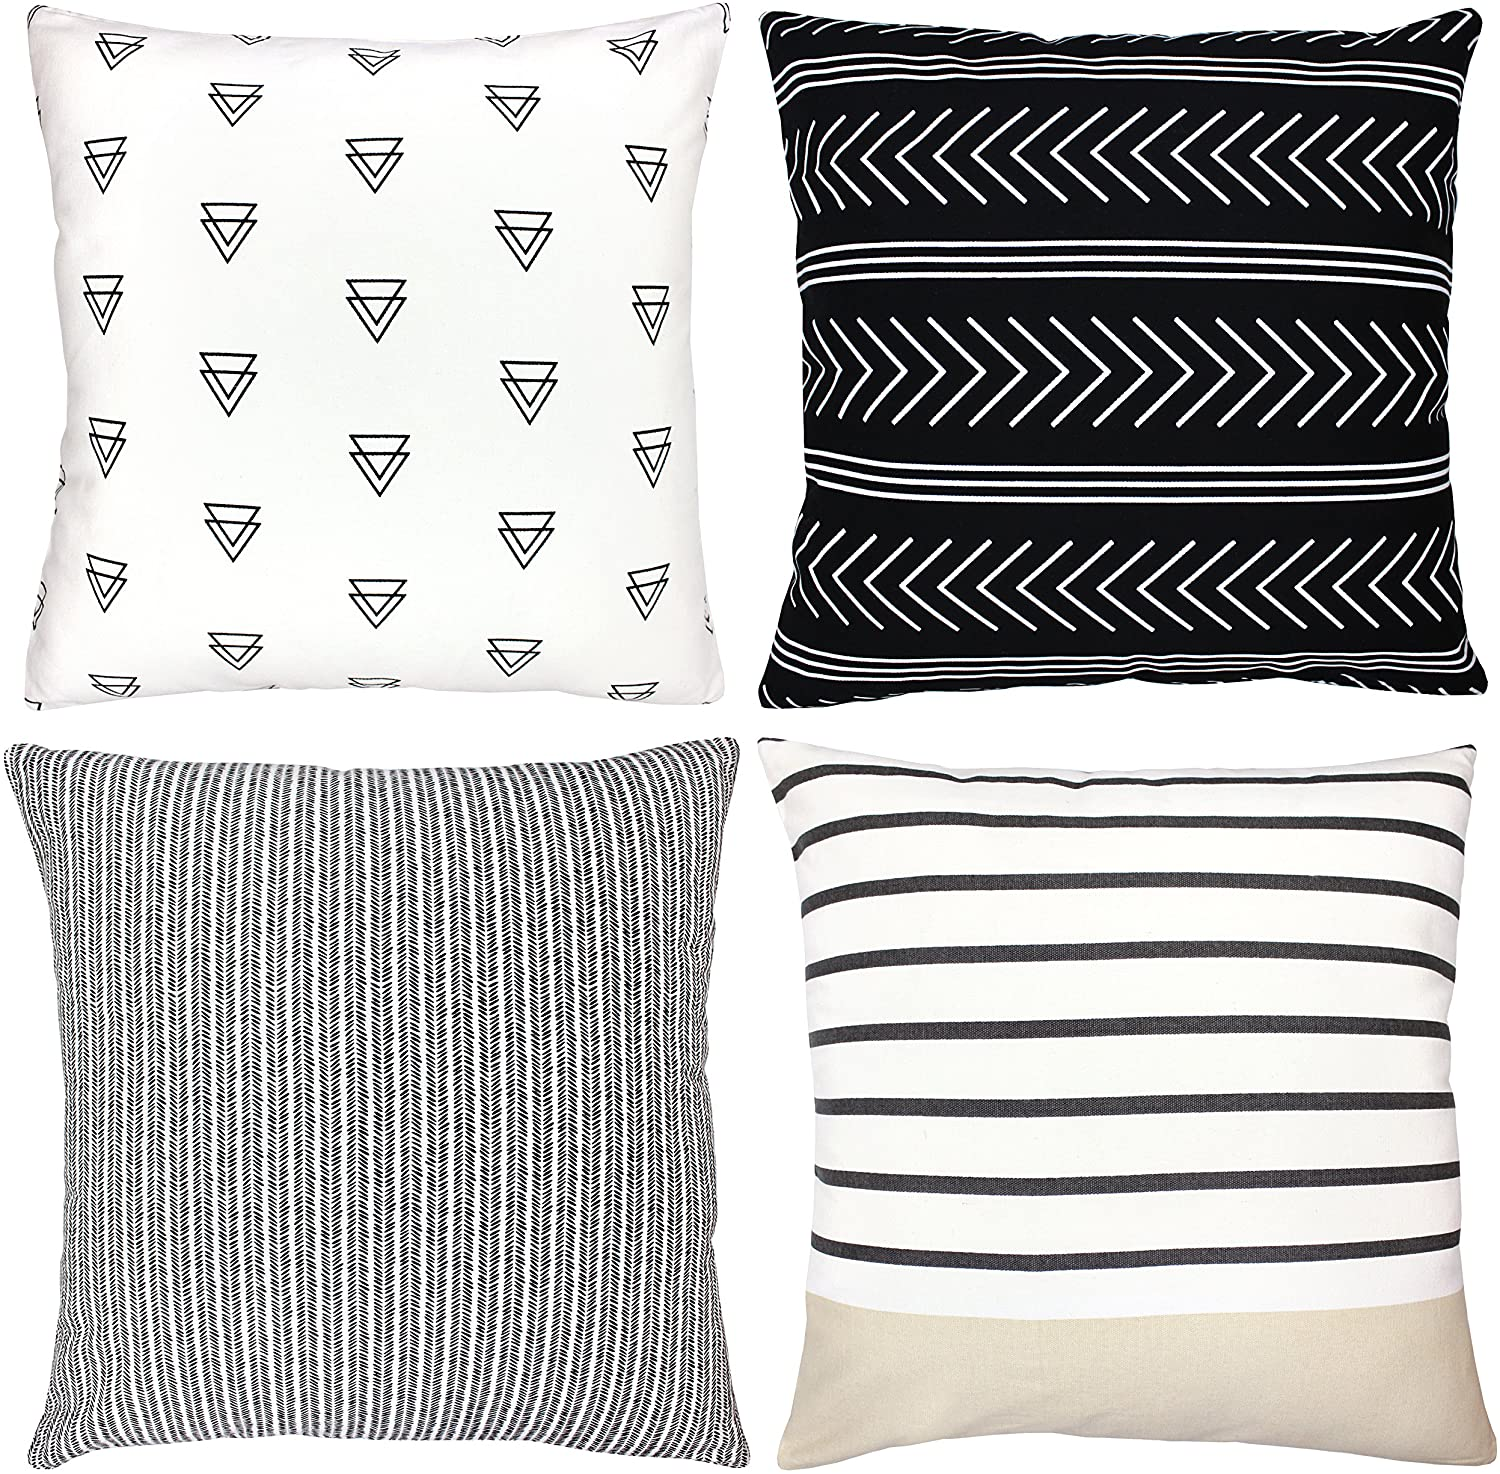 Woven Nook Decorative Throw Pillow Covers Atlas Style 18 X 18 Inches Set Of 4 Home Kitchen